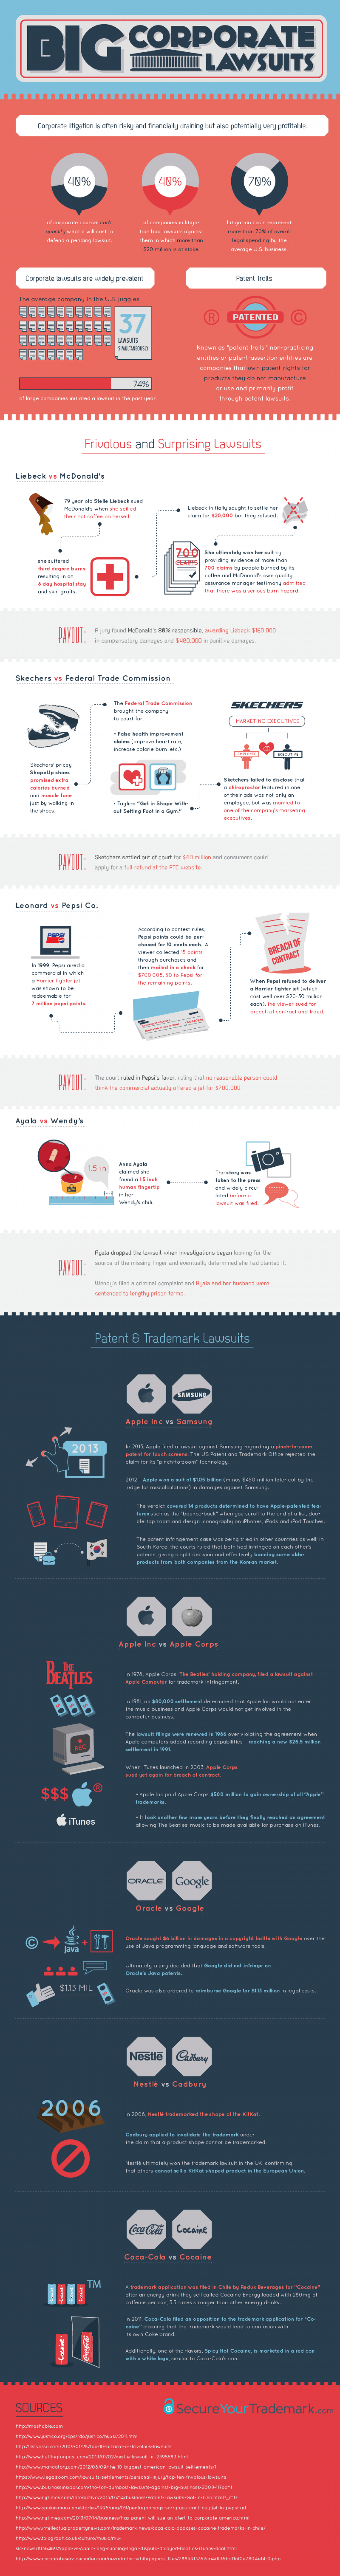 Big Corporate Lawsuits Infographic